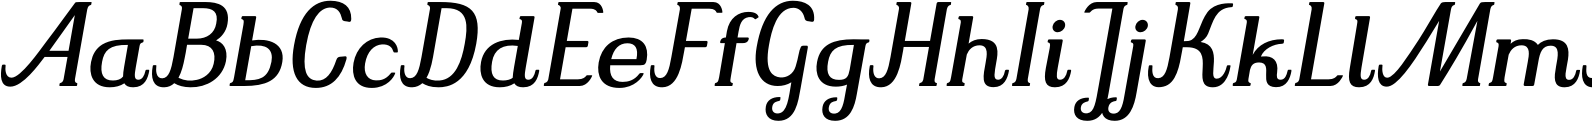 Mrs Green Regular Italic